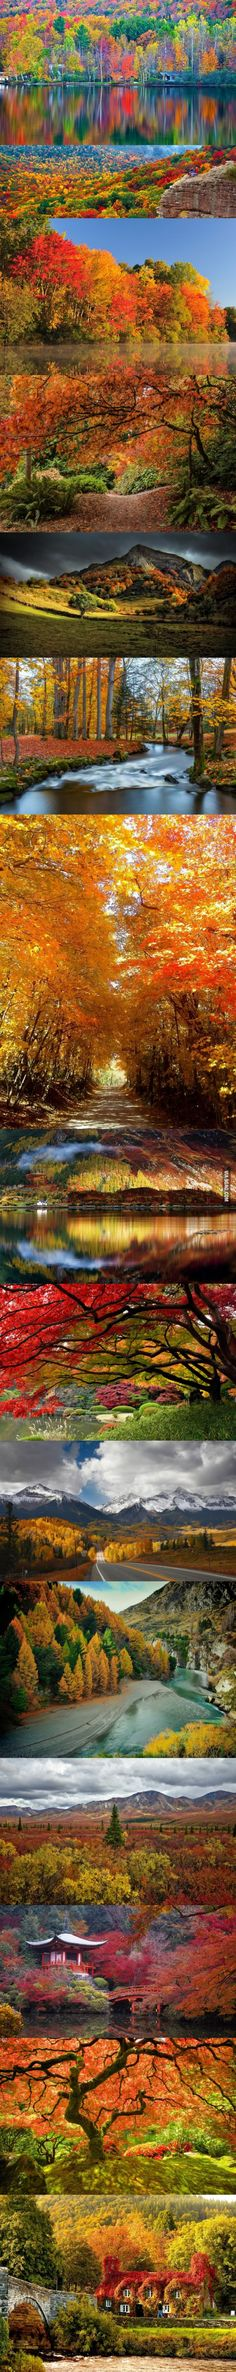 One of the reasons why Autumn is my favorite season